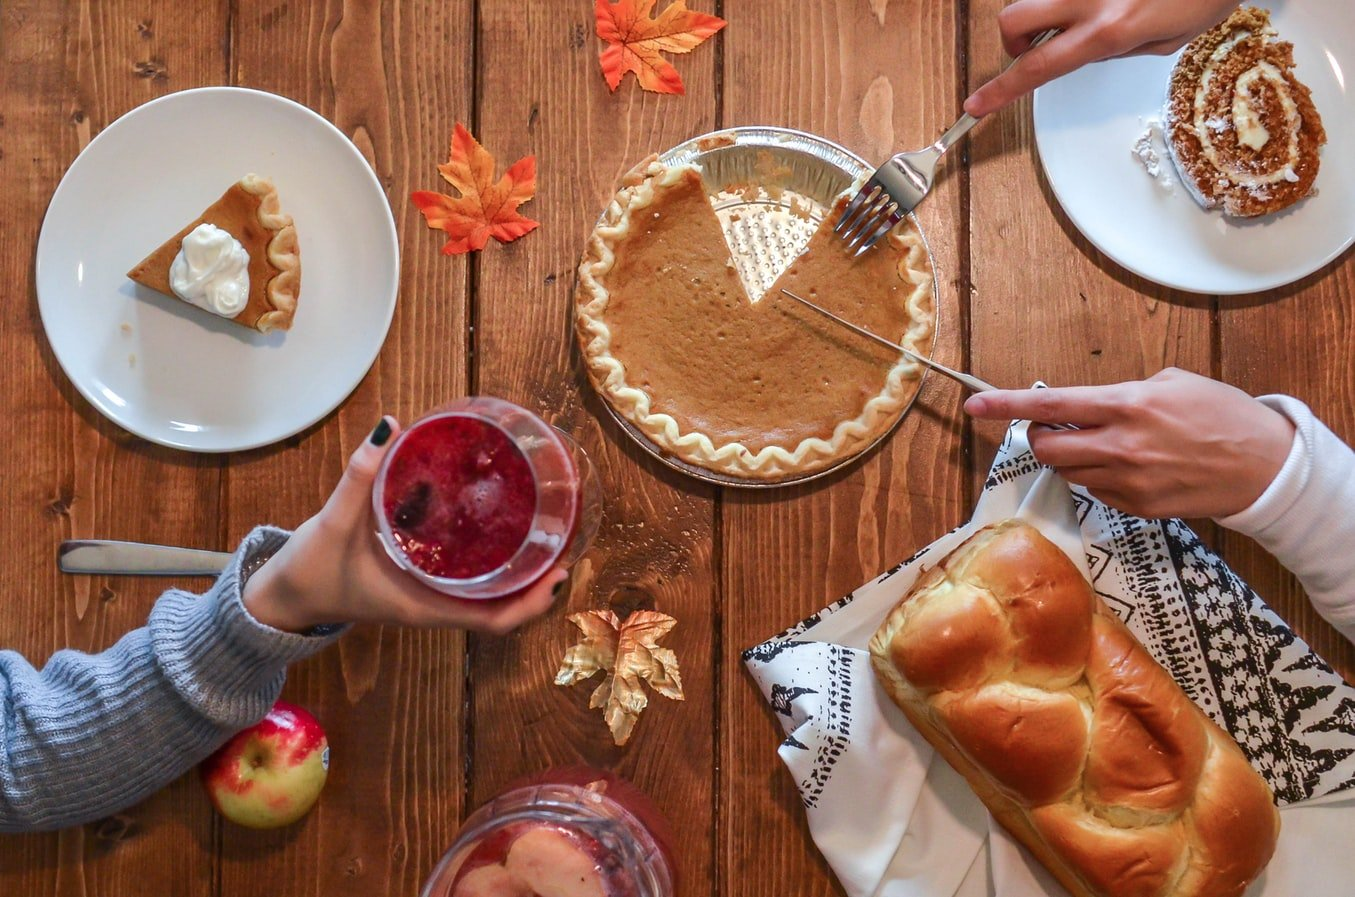 A thanksgiving dinner with fruit, bread, and pumpkin desserts